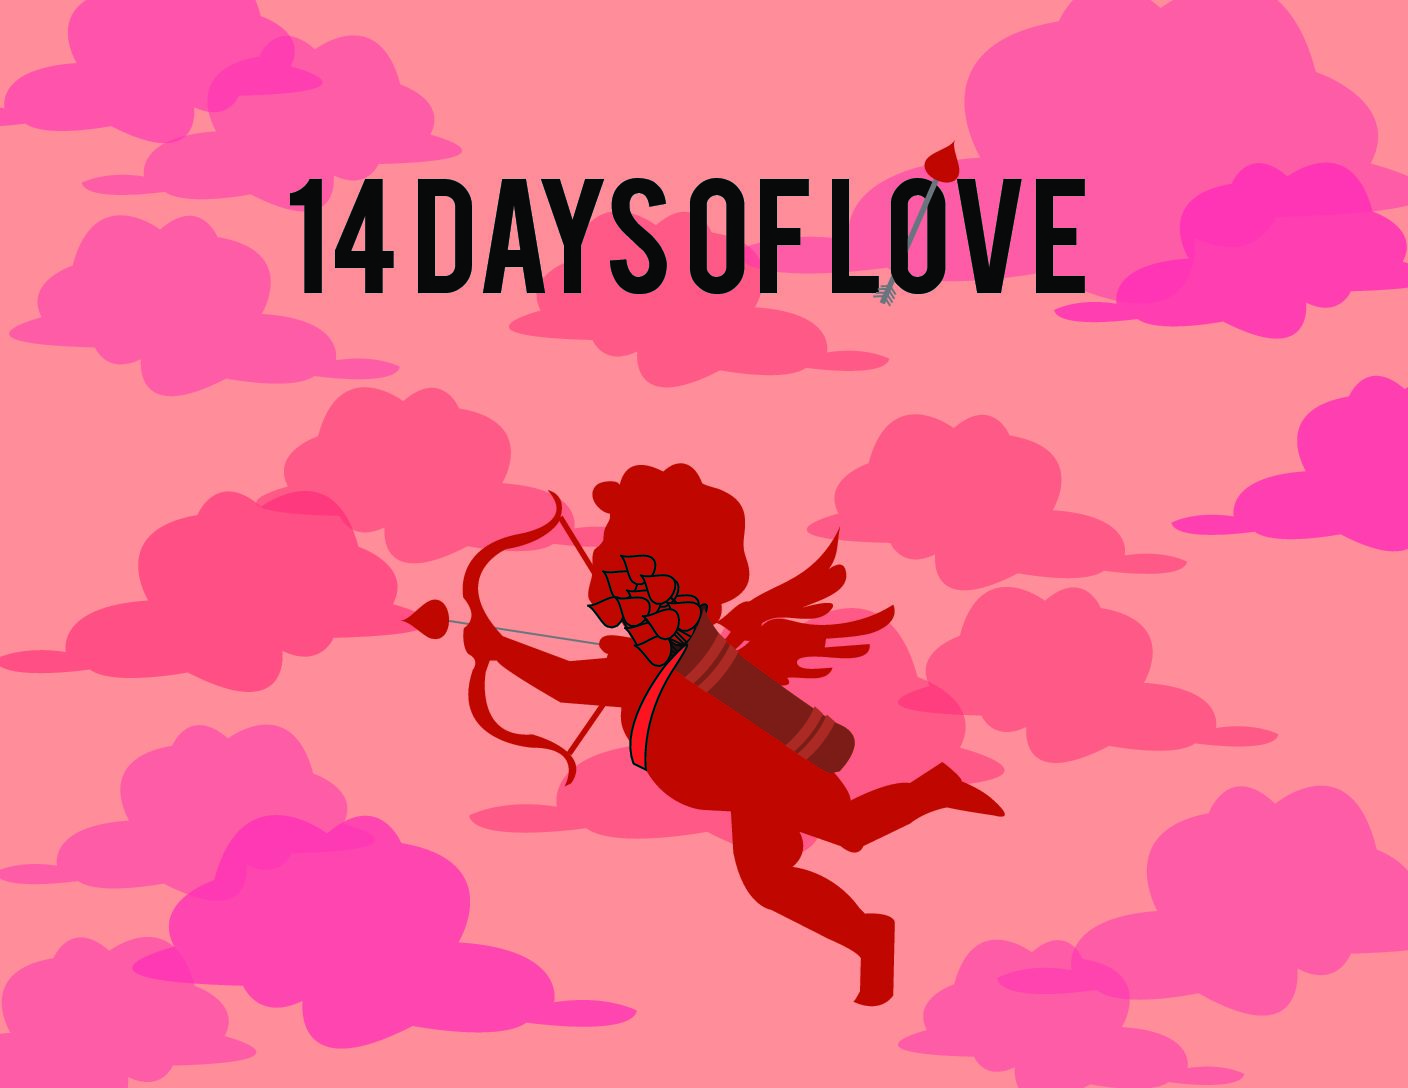 14 Days of Love Day 6: Is it Worth Continuing a Relationship After High School? (FACEOFF)